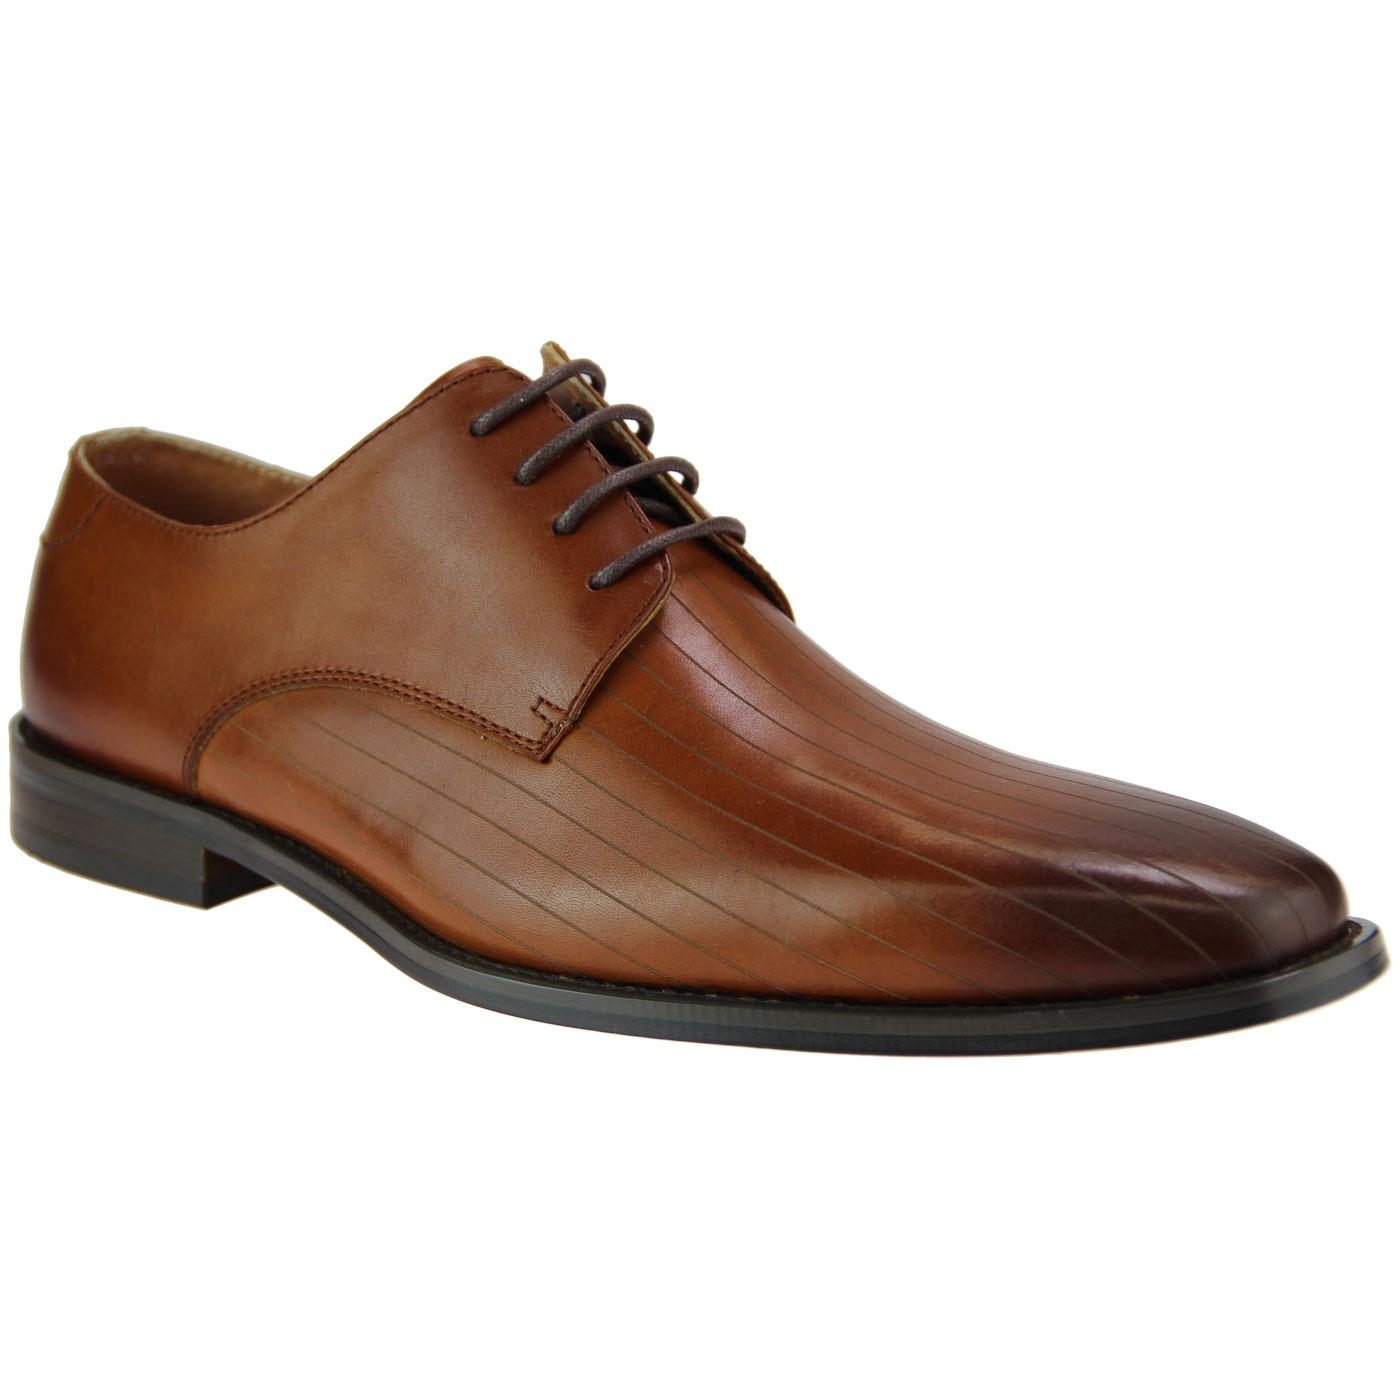 Crusoe PAOLO VANDINI Mod Pinstripe Derby Shoes TAN